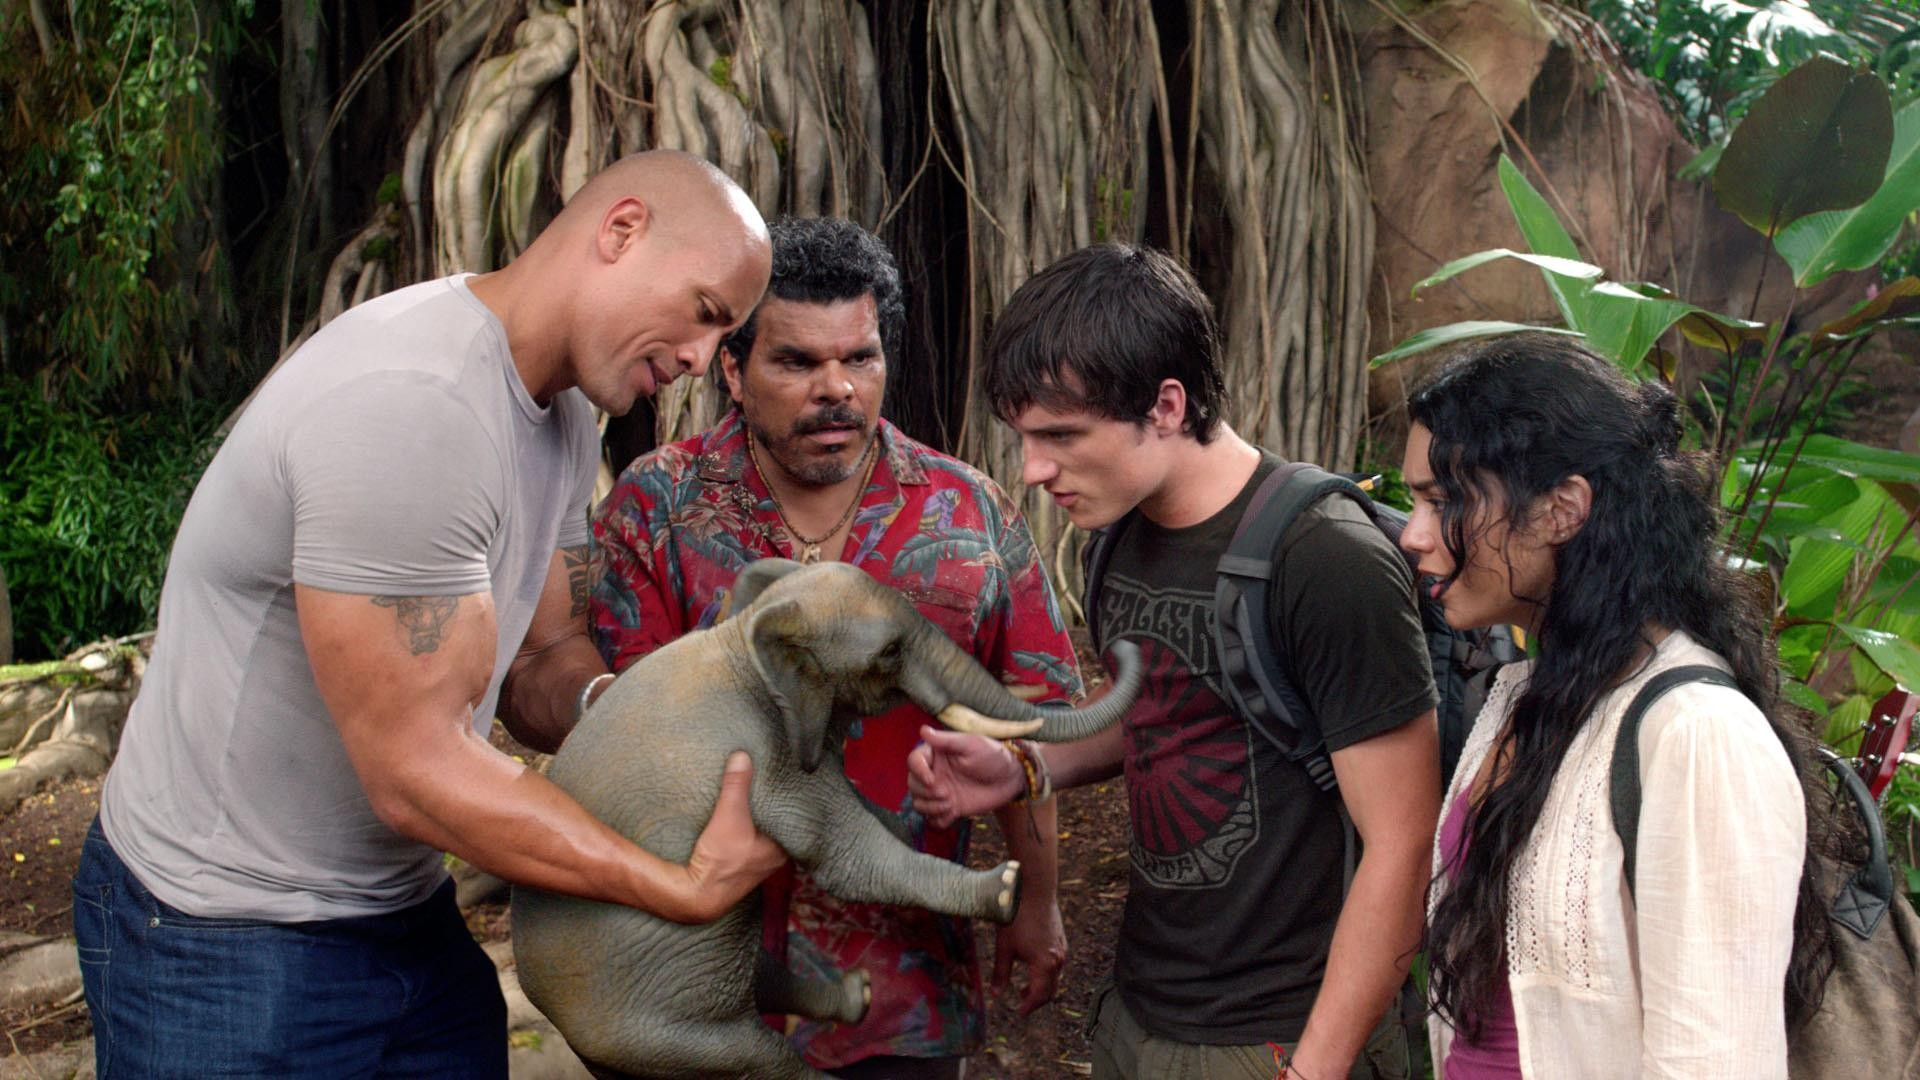 journey 2 the mysterious island Journey 2: the mysterious island starring josh hutcherson, dwayne the rock johnson and michael caine, this adventure comedy is the sequel to the first movie in 2008 this time, sean anderson and his new stepdad pack their gears and travel to an enigmatic island after receiving a coded signal.